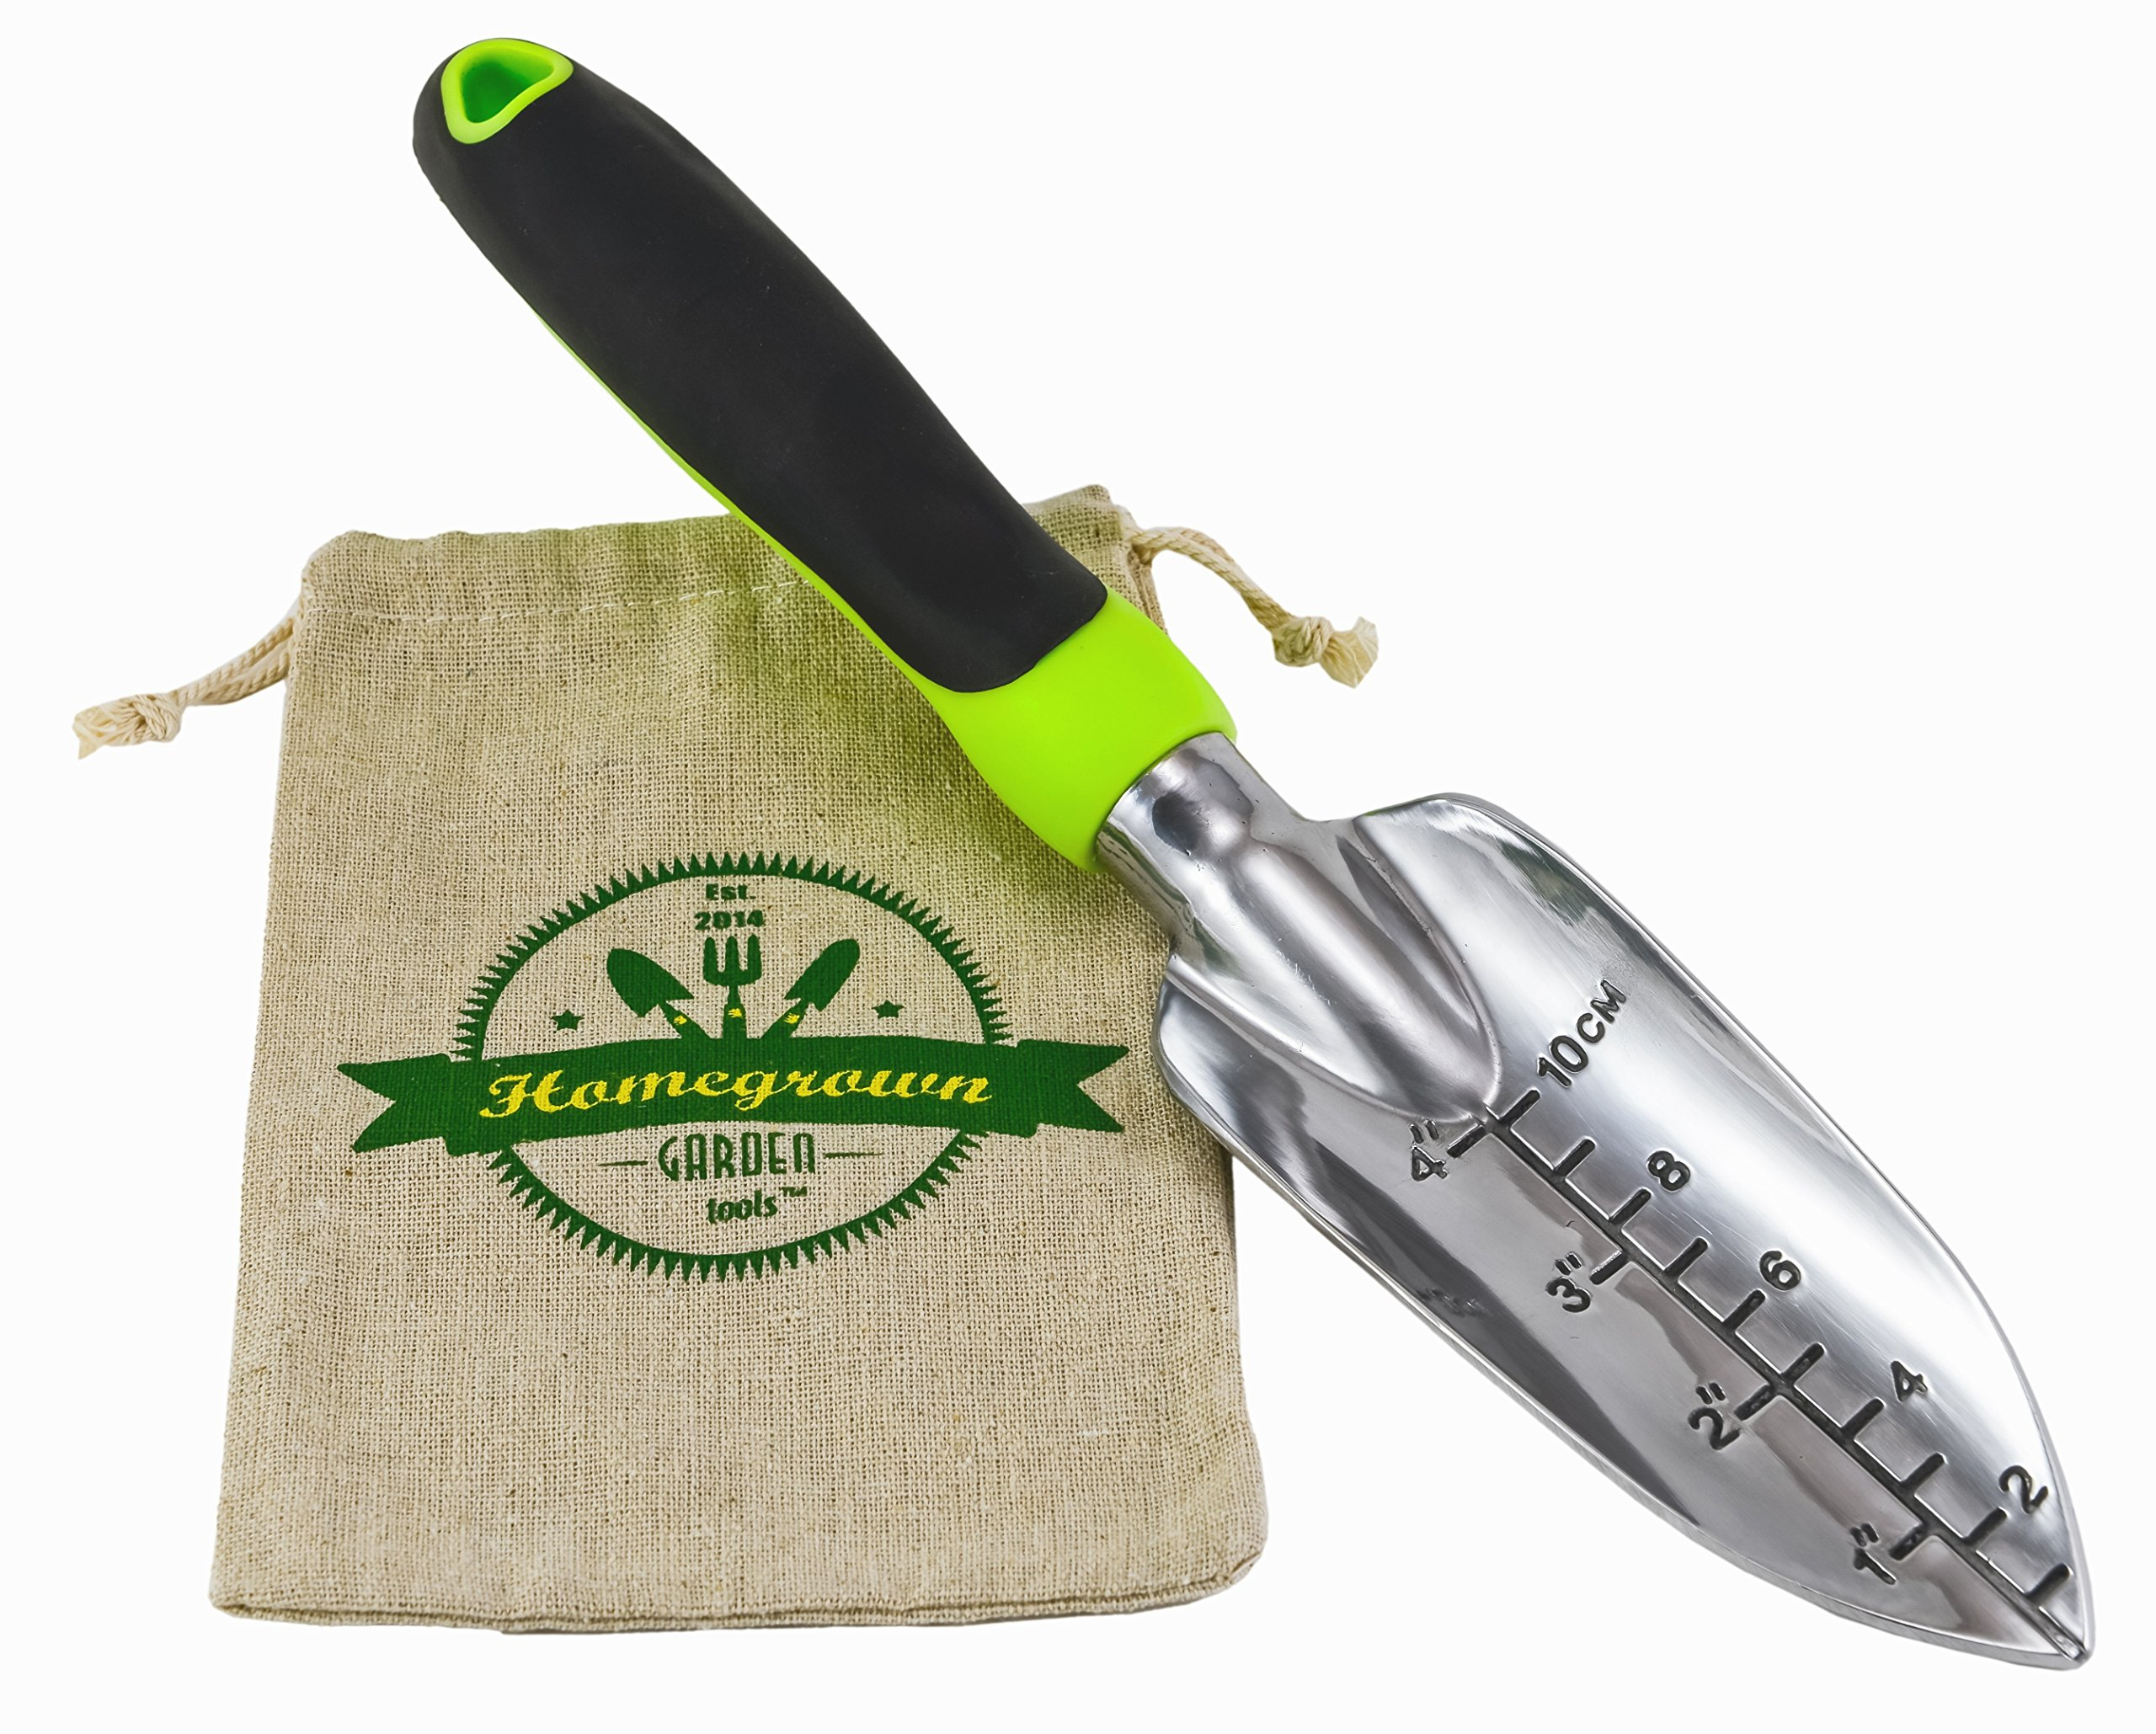 Modern Times Living Transplanter Trowel with Ergonomic Handle from Homegrown Garden Tools; Heavy Duty Polished Aluminium Blade; Includes Burlap Tote Sack - Makes Great Gift